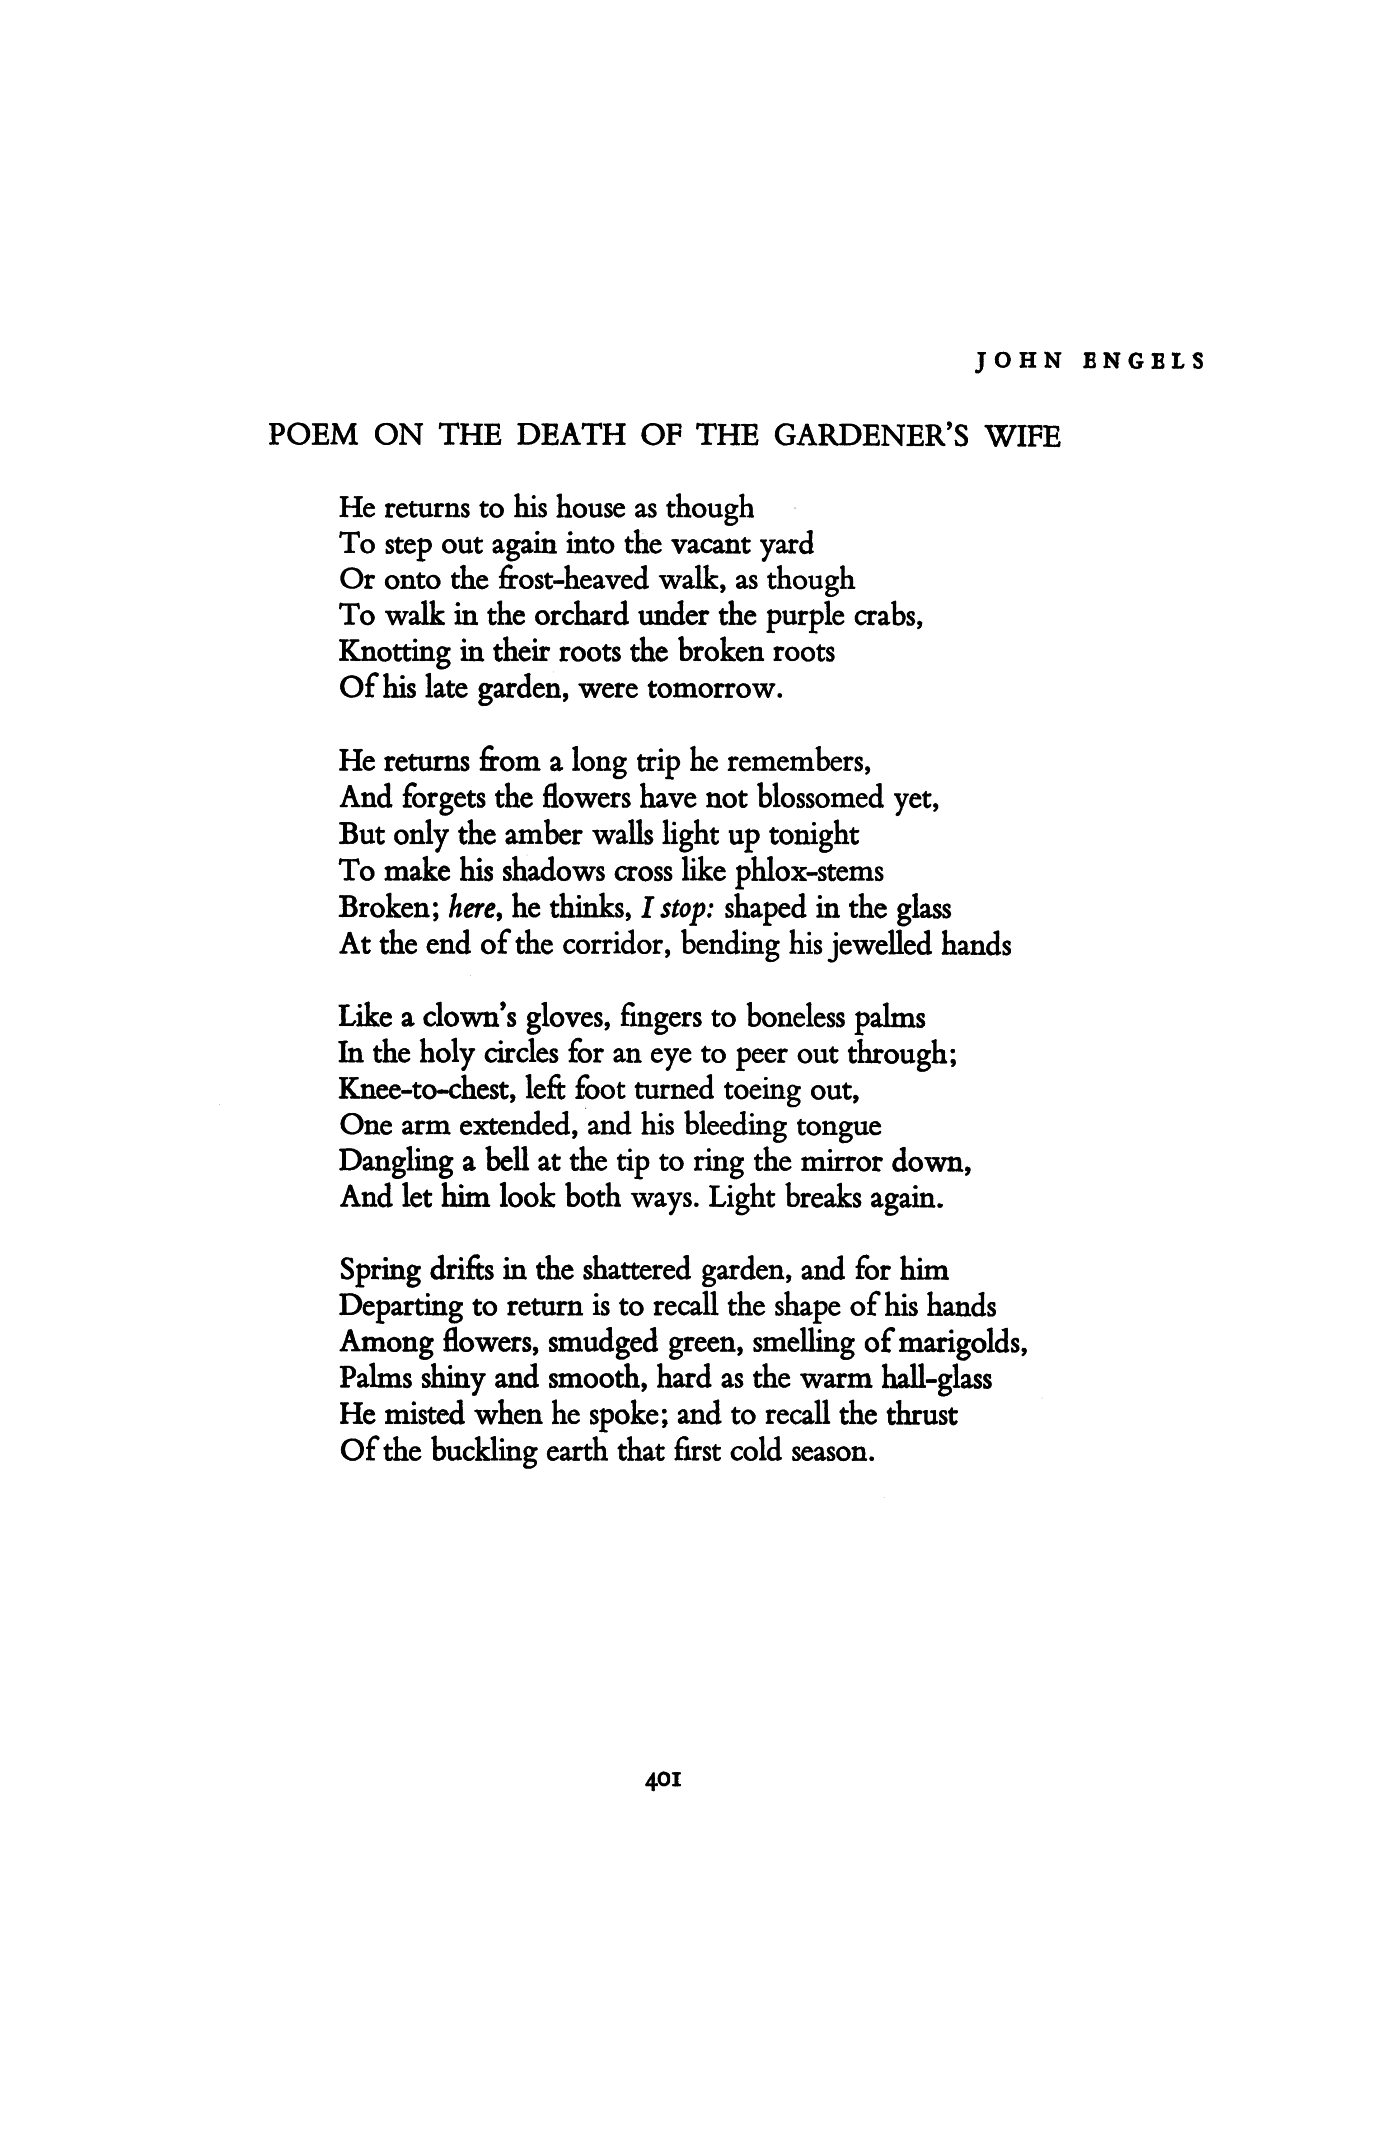 the march of death poem